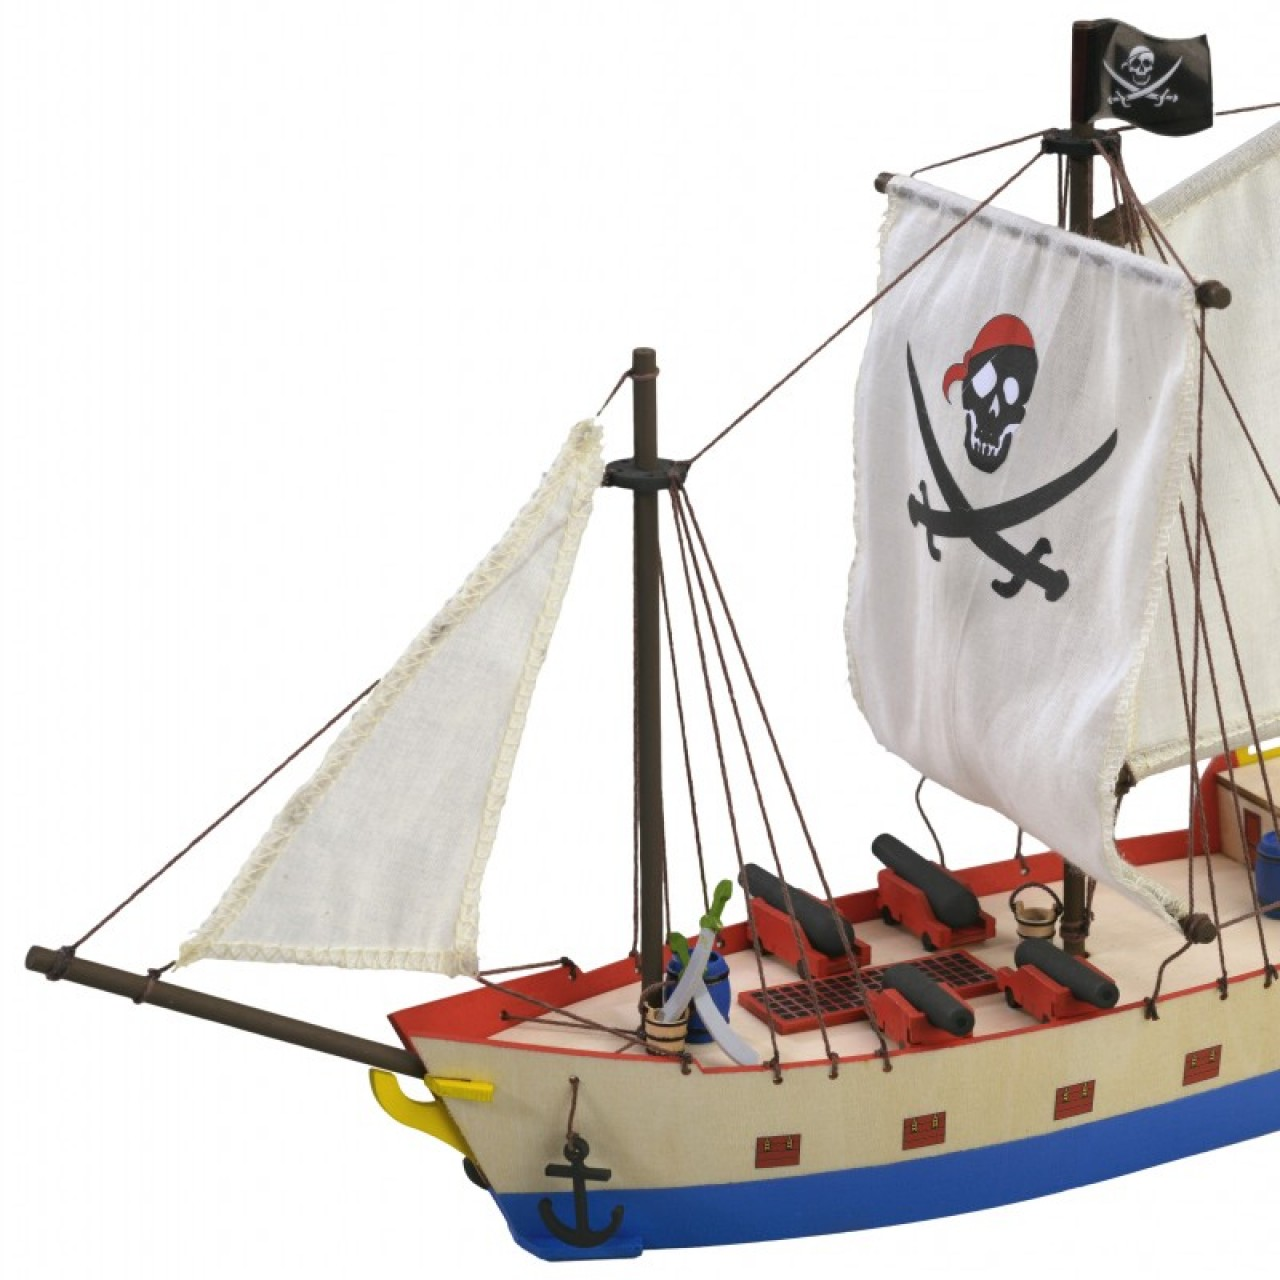 pirate ship model for kids